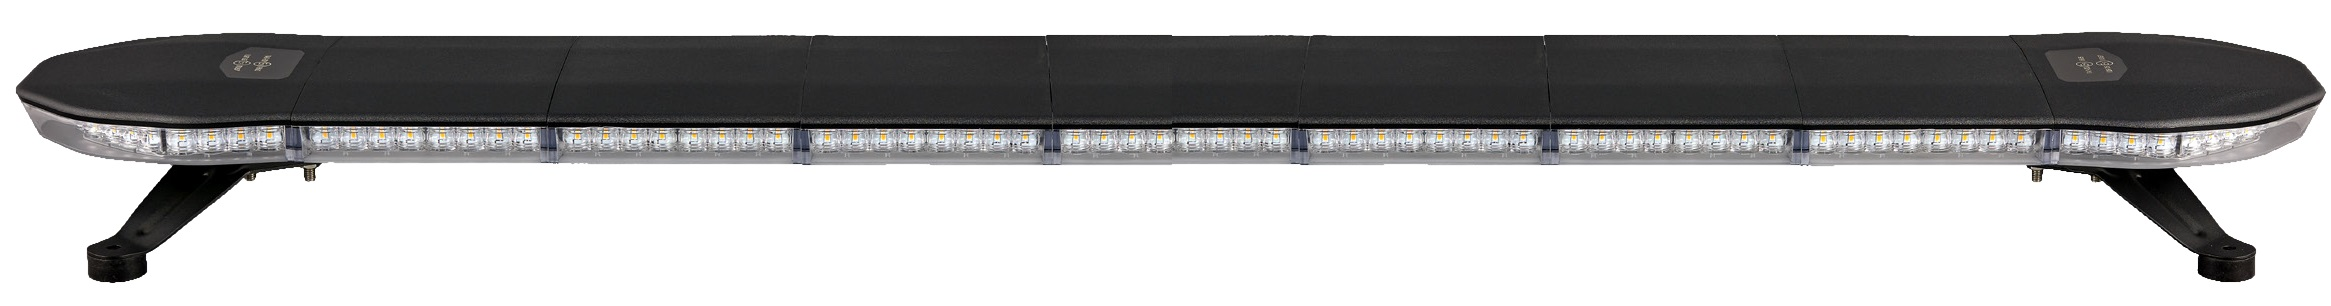 LAP Eclipse LED Lightbars